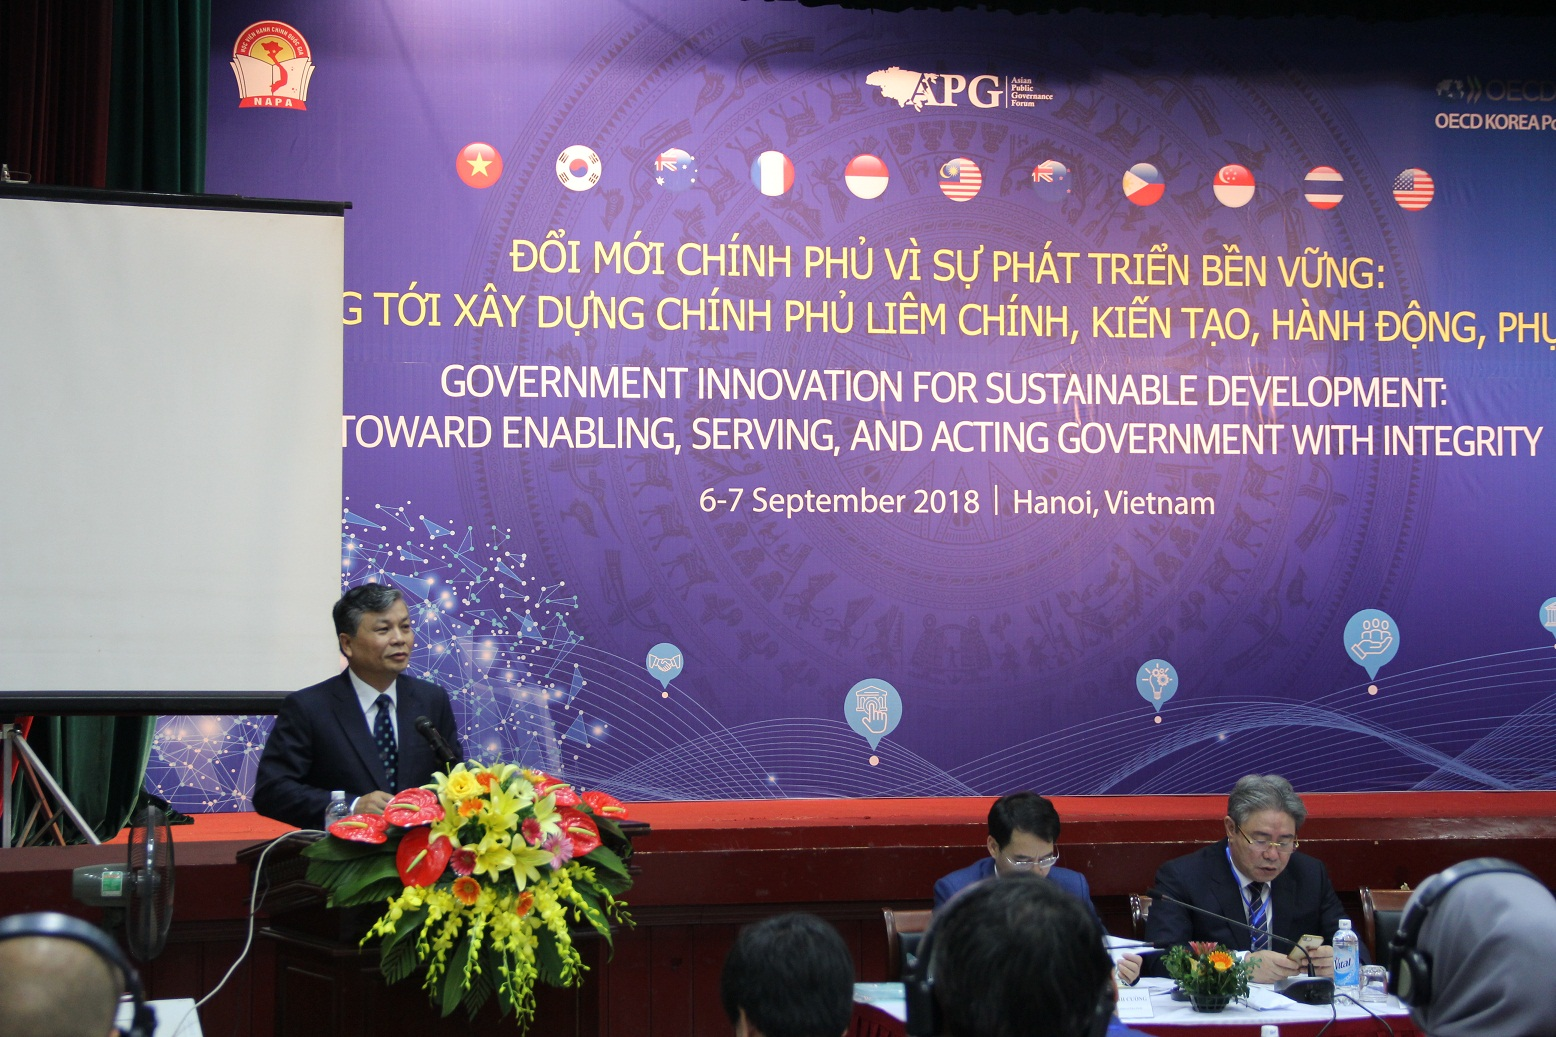 Mr. Nguyen Trong Thua, Vice Minister of Home Affairs delivers opening speech in the APG Forum